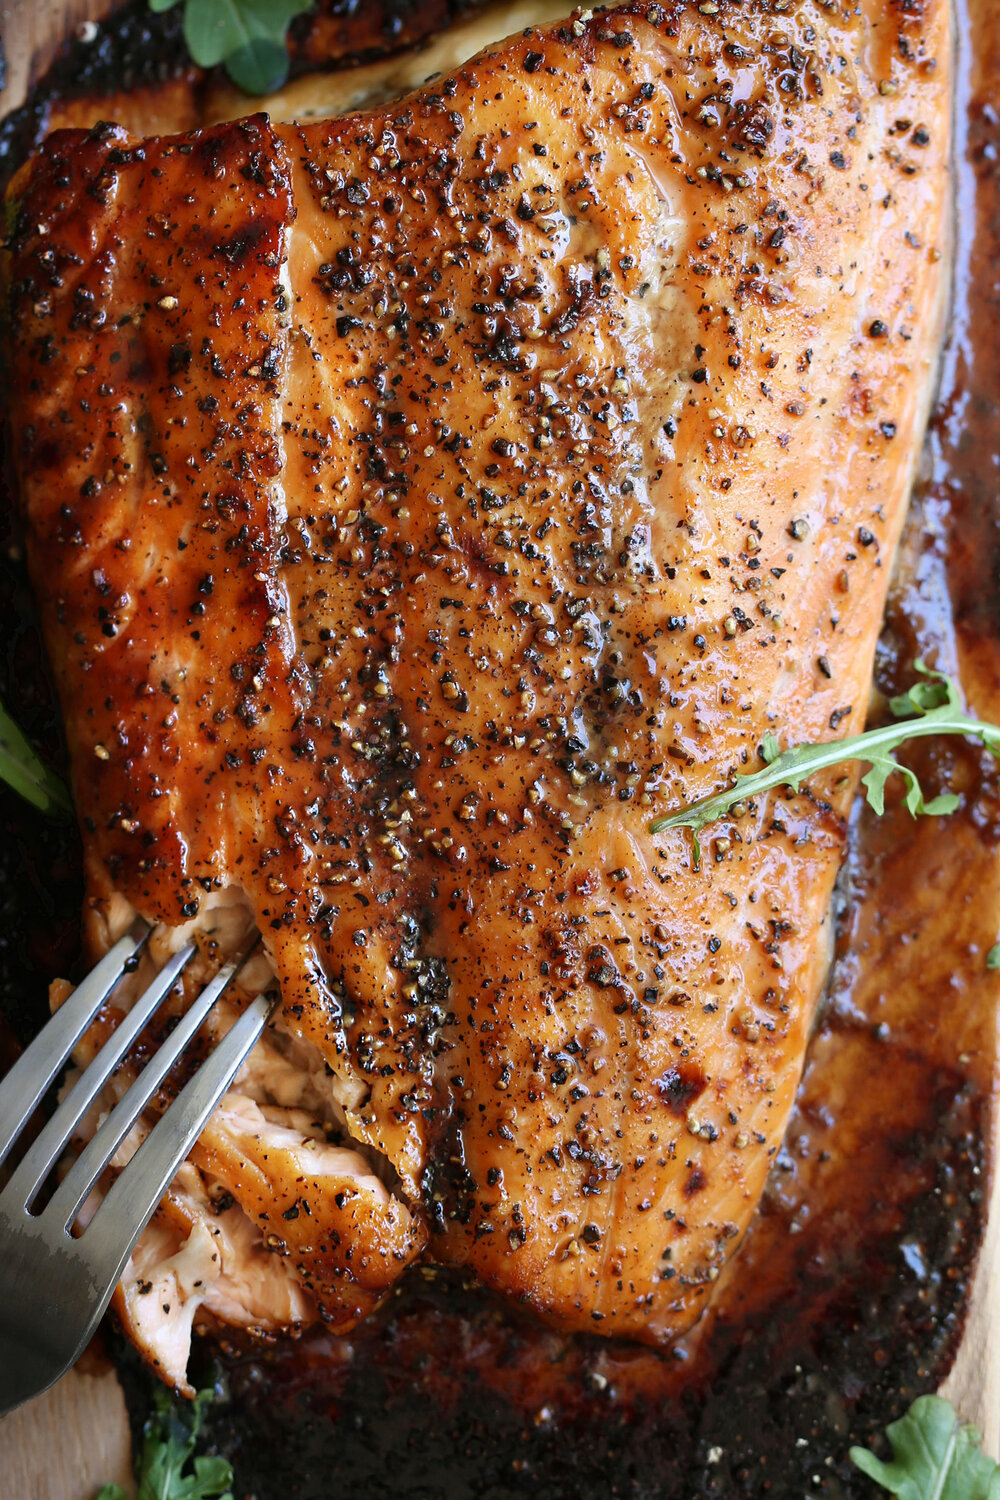 - Cedar Plank Salmon with Brown Sugar & Black Pepper- This flexible recipe can be made on the grill or in the oven – be sure to roast your salmon just until it's cooked through but still a deeper pink inside. I usually roast mine at 400º for about 16 minutes and serve with a variety of toppings.